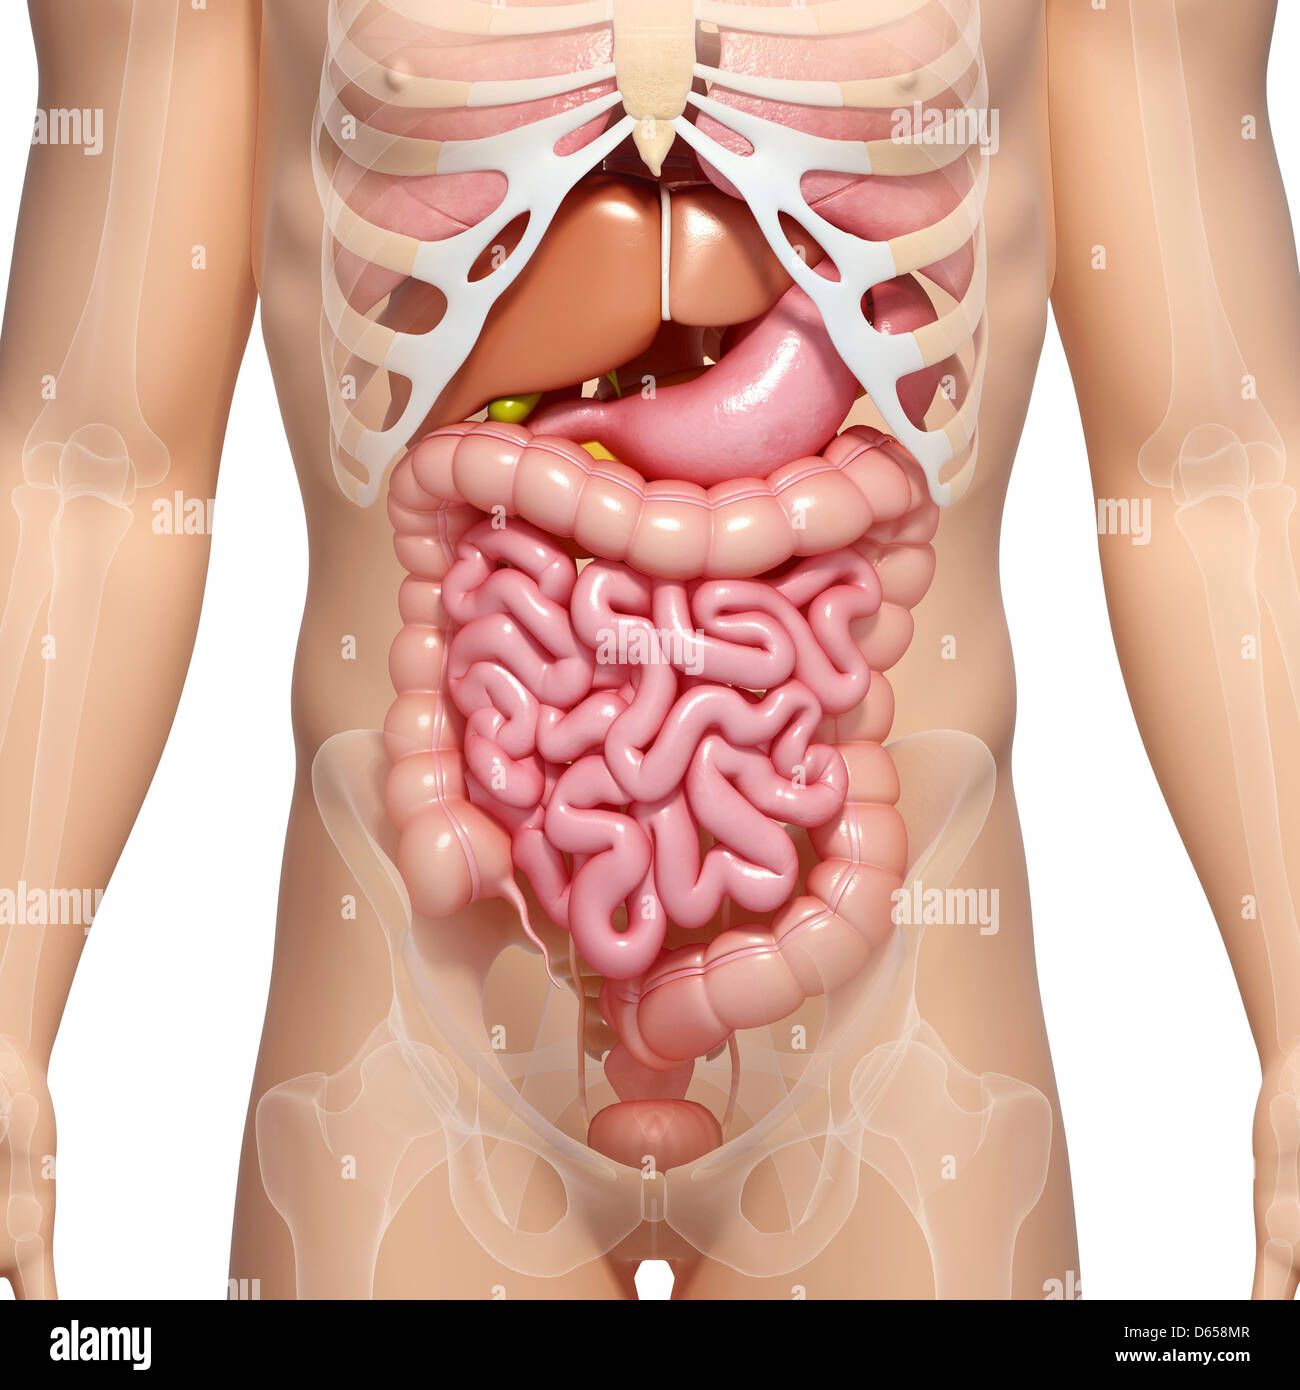 hight resolution of male digestive system artwork stock image